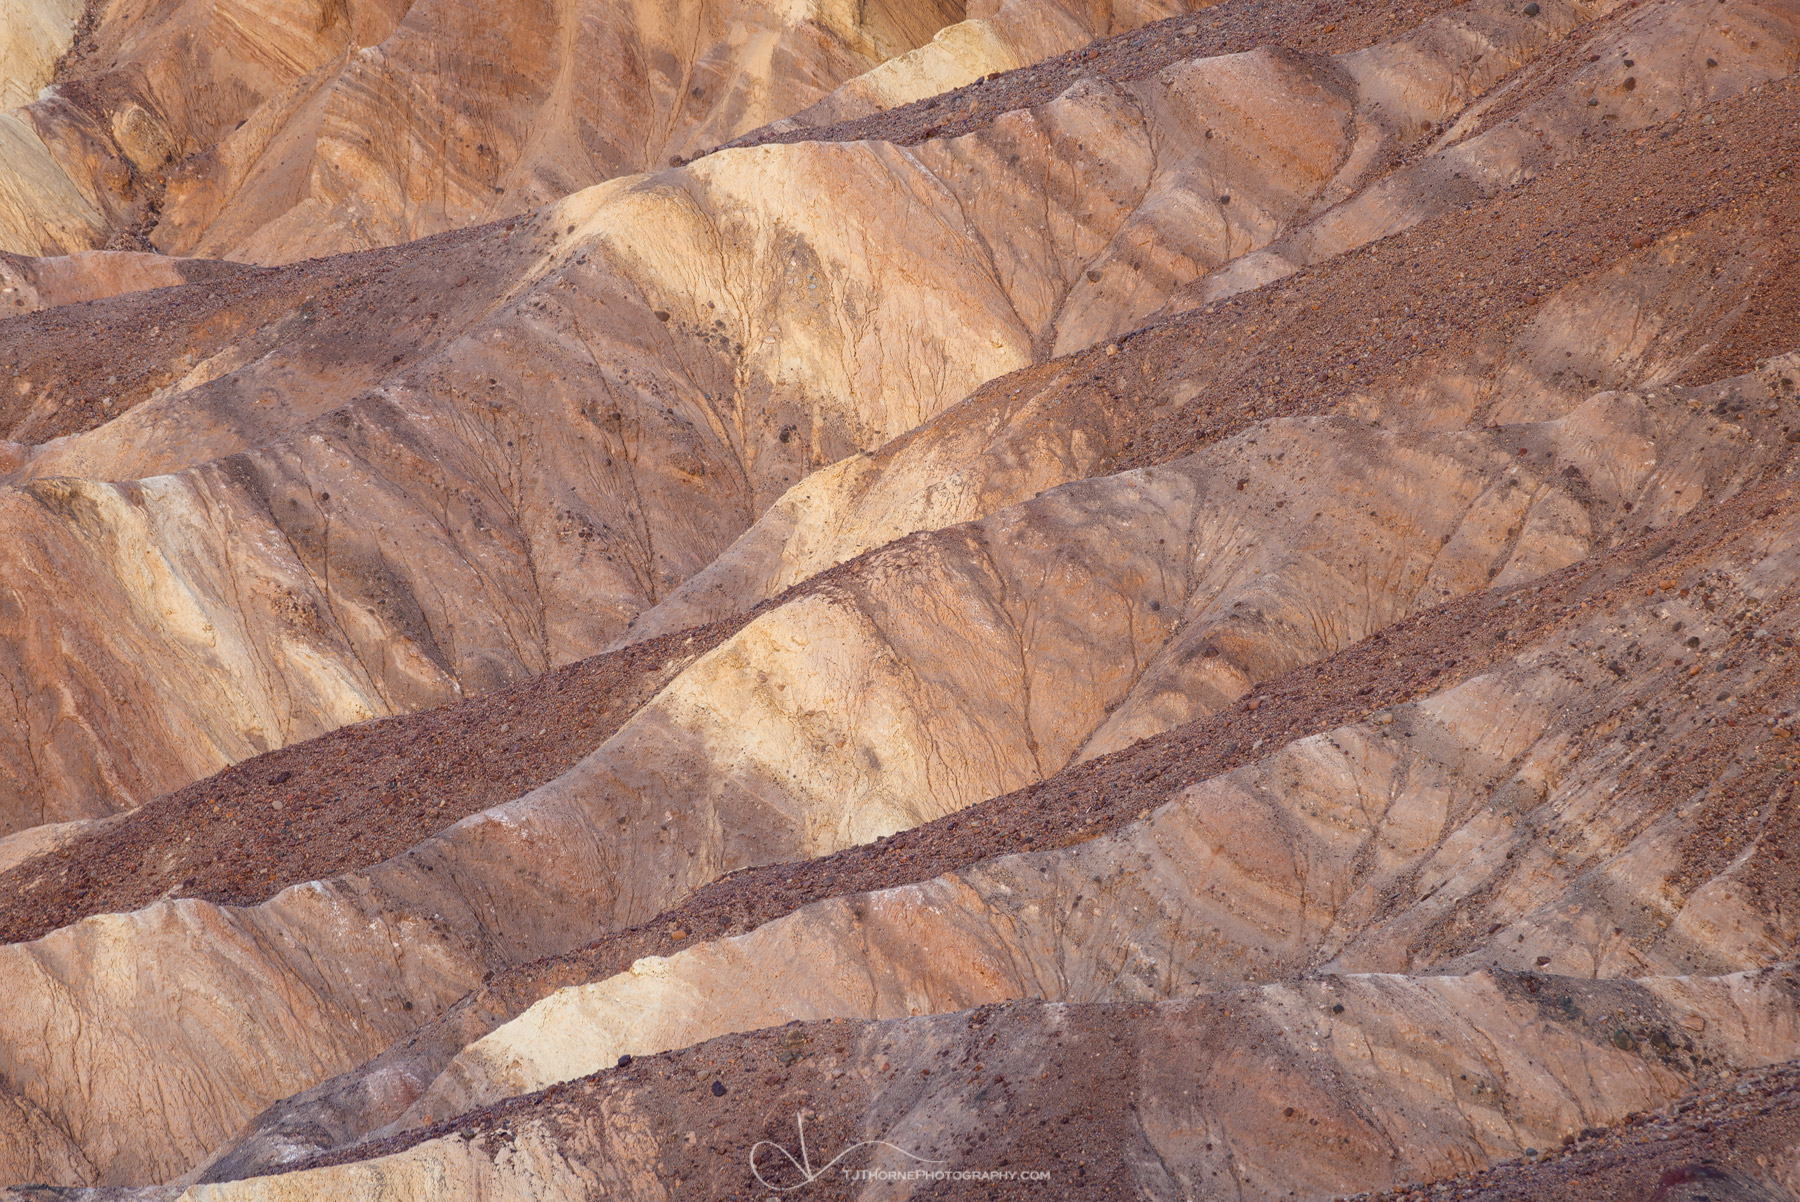 FINE ART LIMITED EDITION OF 100 An abstract of variegated badlands in Death Valley National Park.